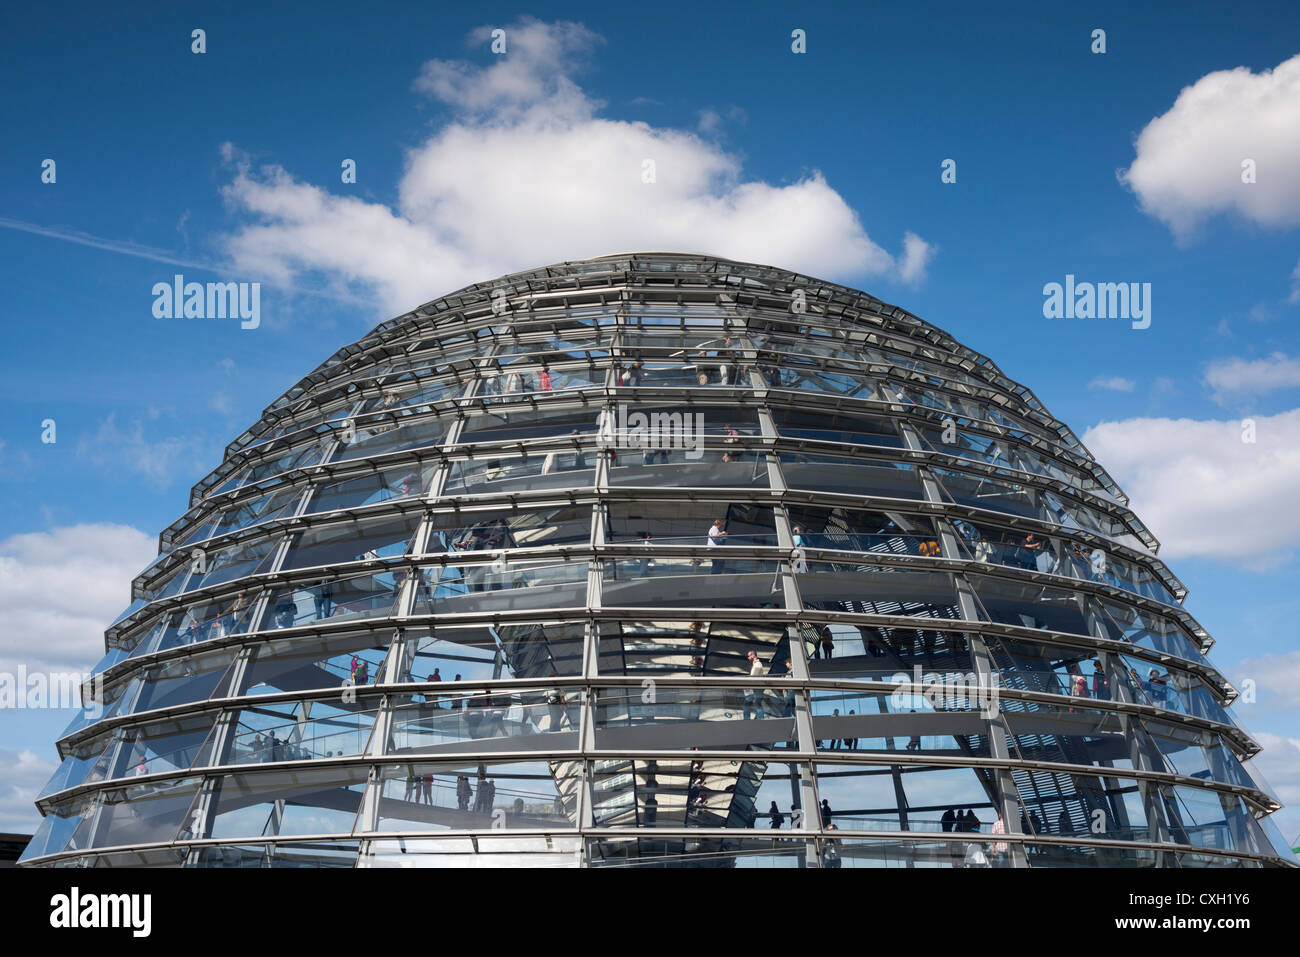 reichstag building glass dome berlin germany europe stock photo royalty free image. Black Bedroom Furniture Sets. Home Design Ideas